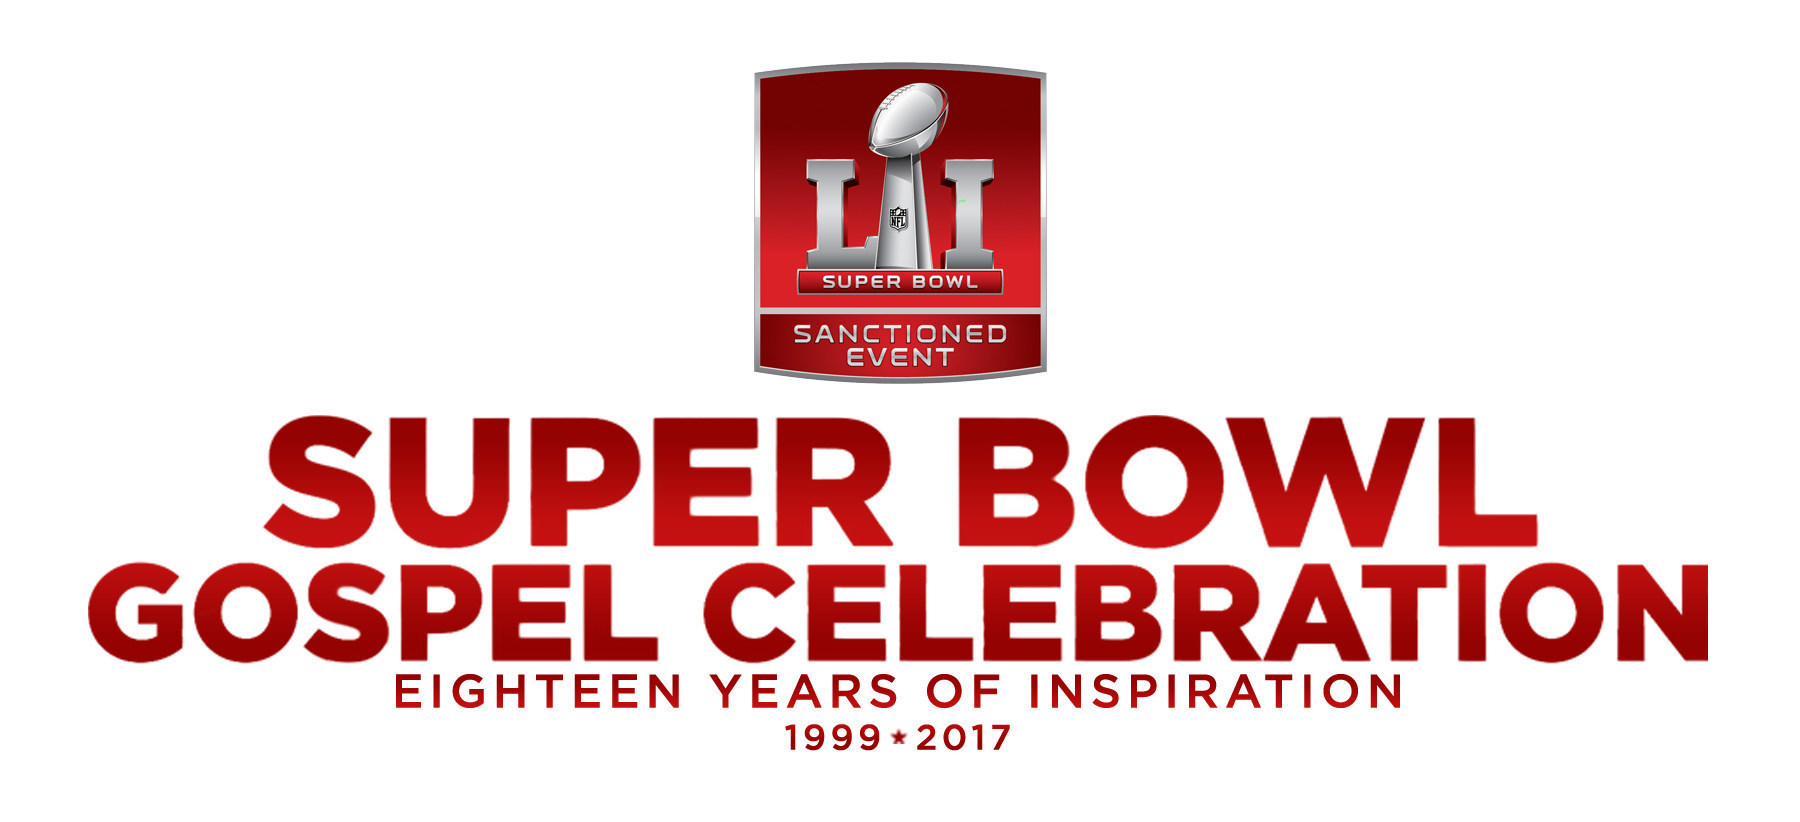 18th Annual NFL Sanctioned Super Bowl Gospel Celebration (PRNewsFoto/Super Bowl Gospel Celebration)